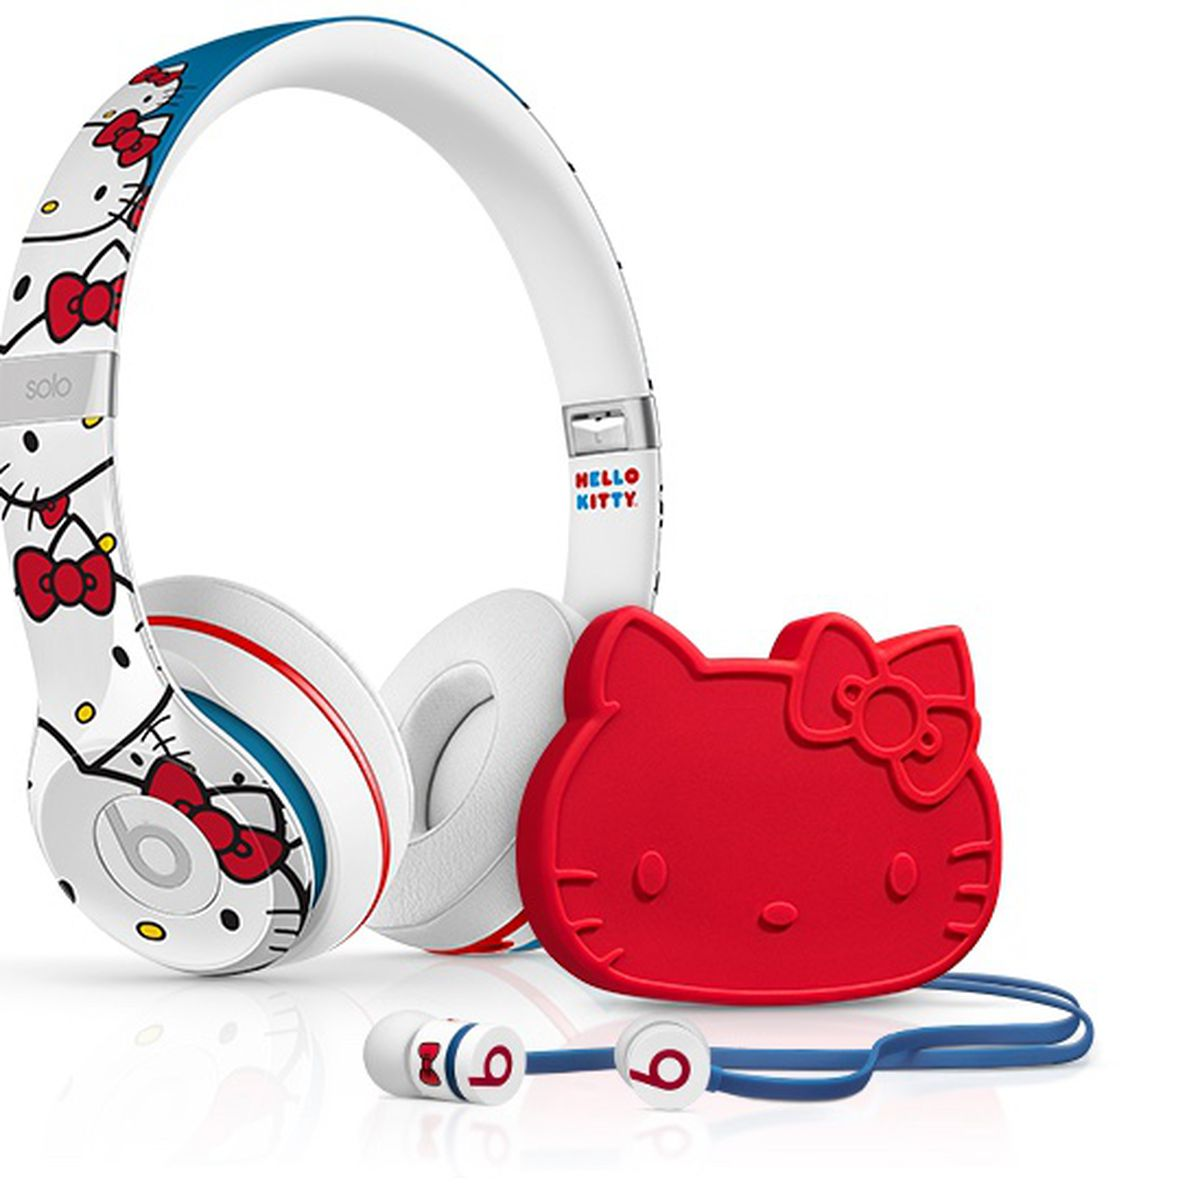 Get Hello Kitty Beats Solo 3 Background